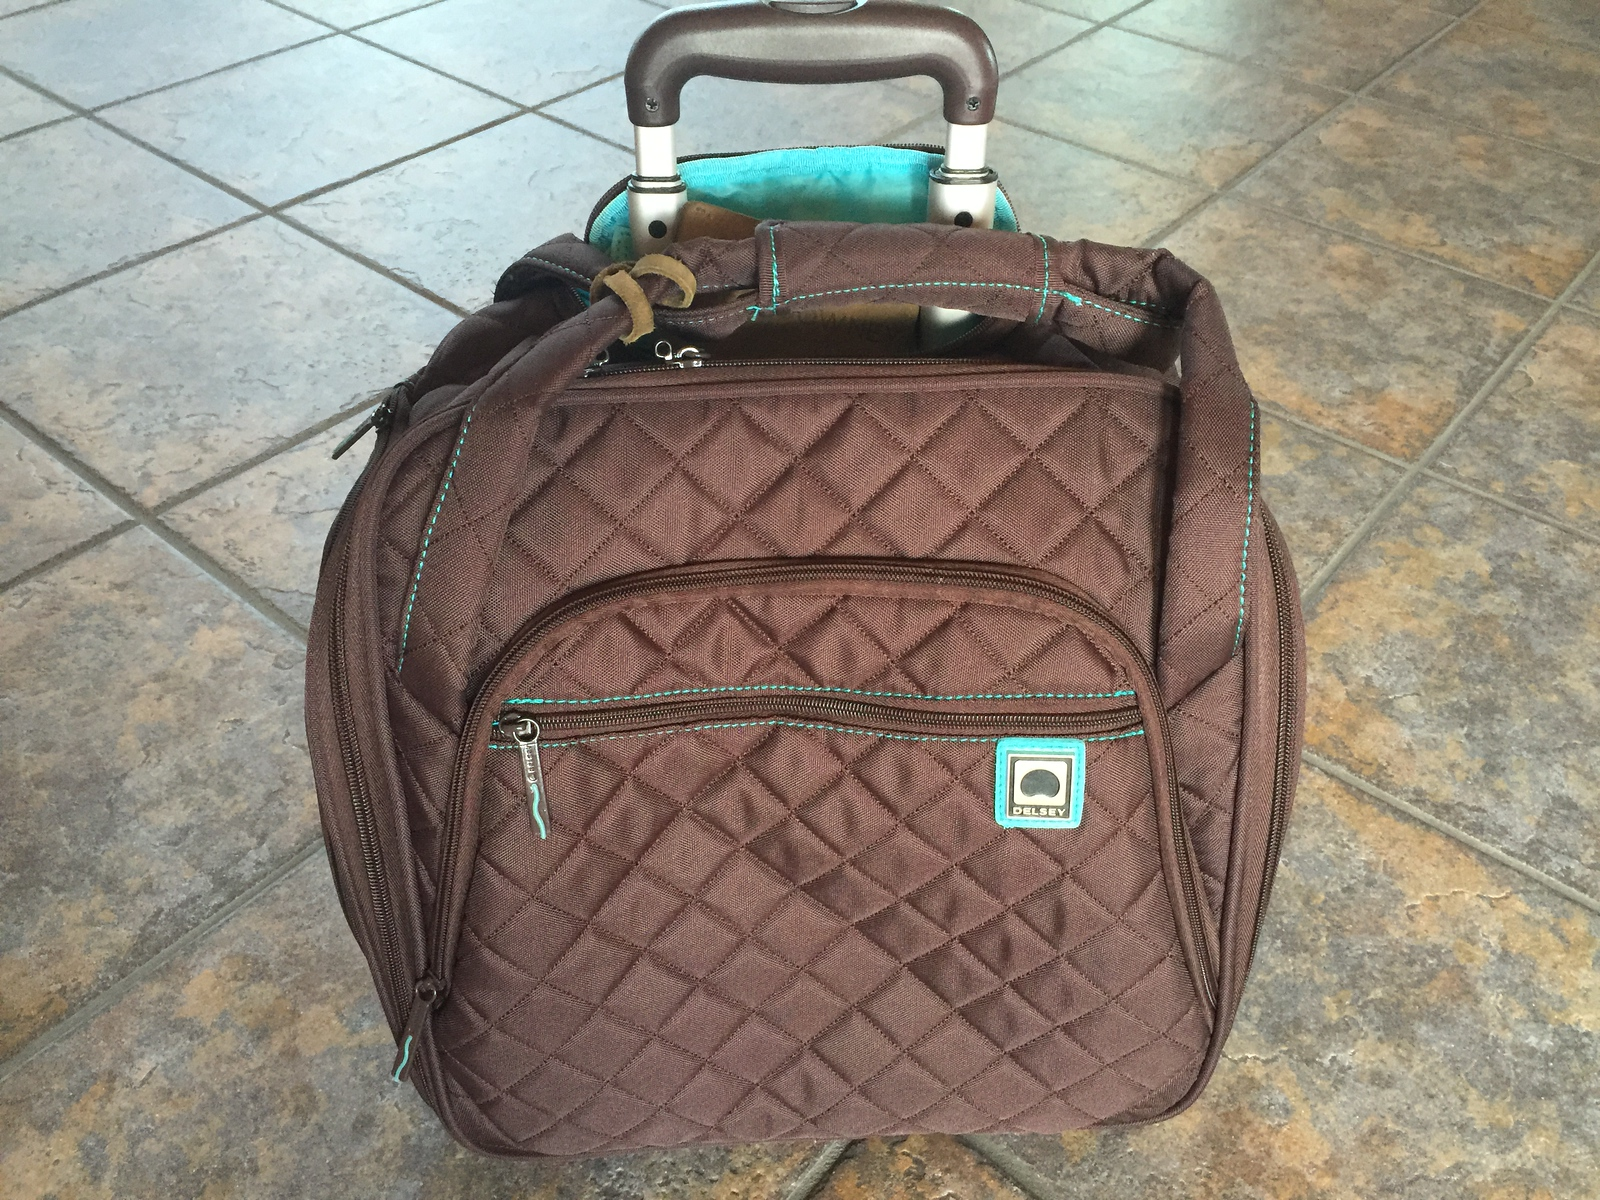 This quilted Delsey rolling tote bag fits underneath most airline seats. It's one of our travel favorites.